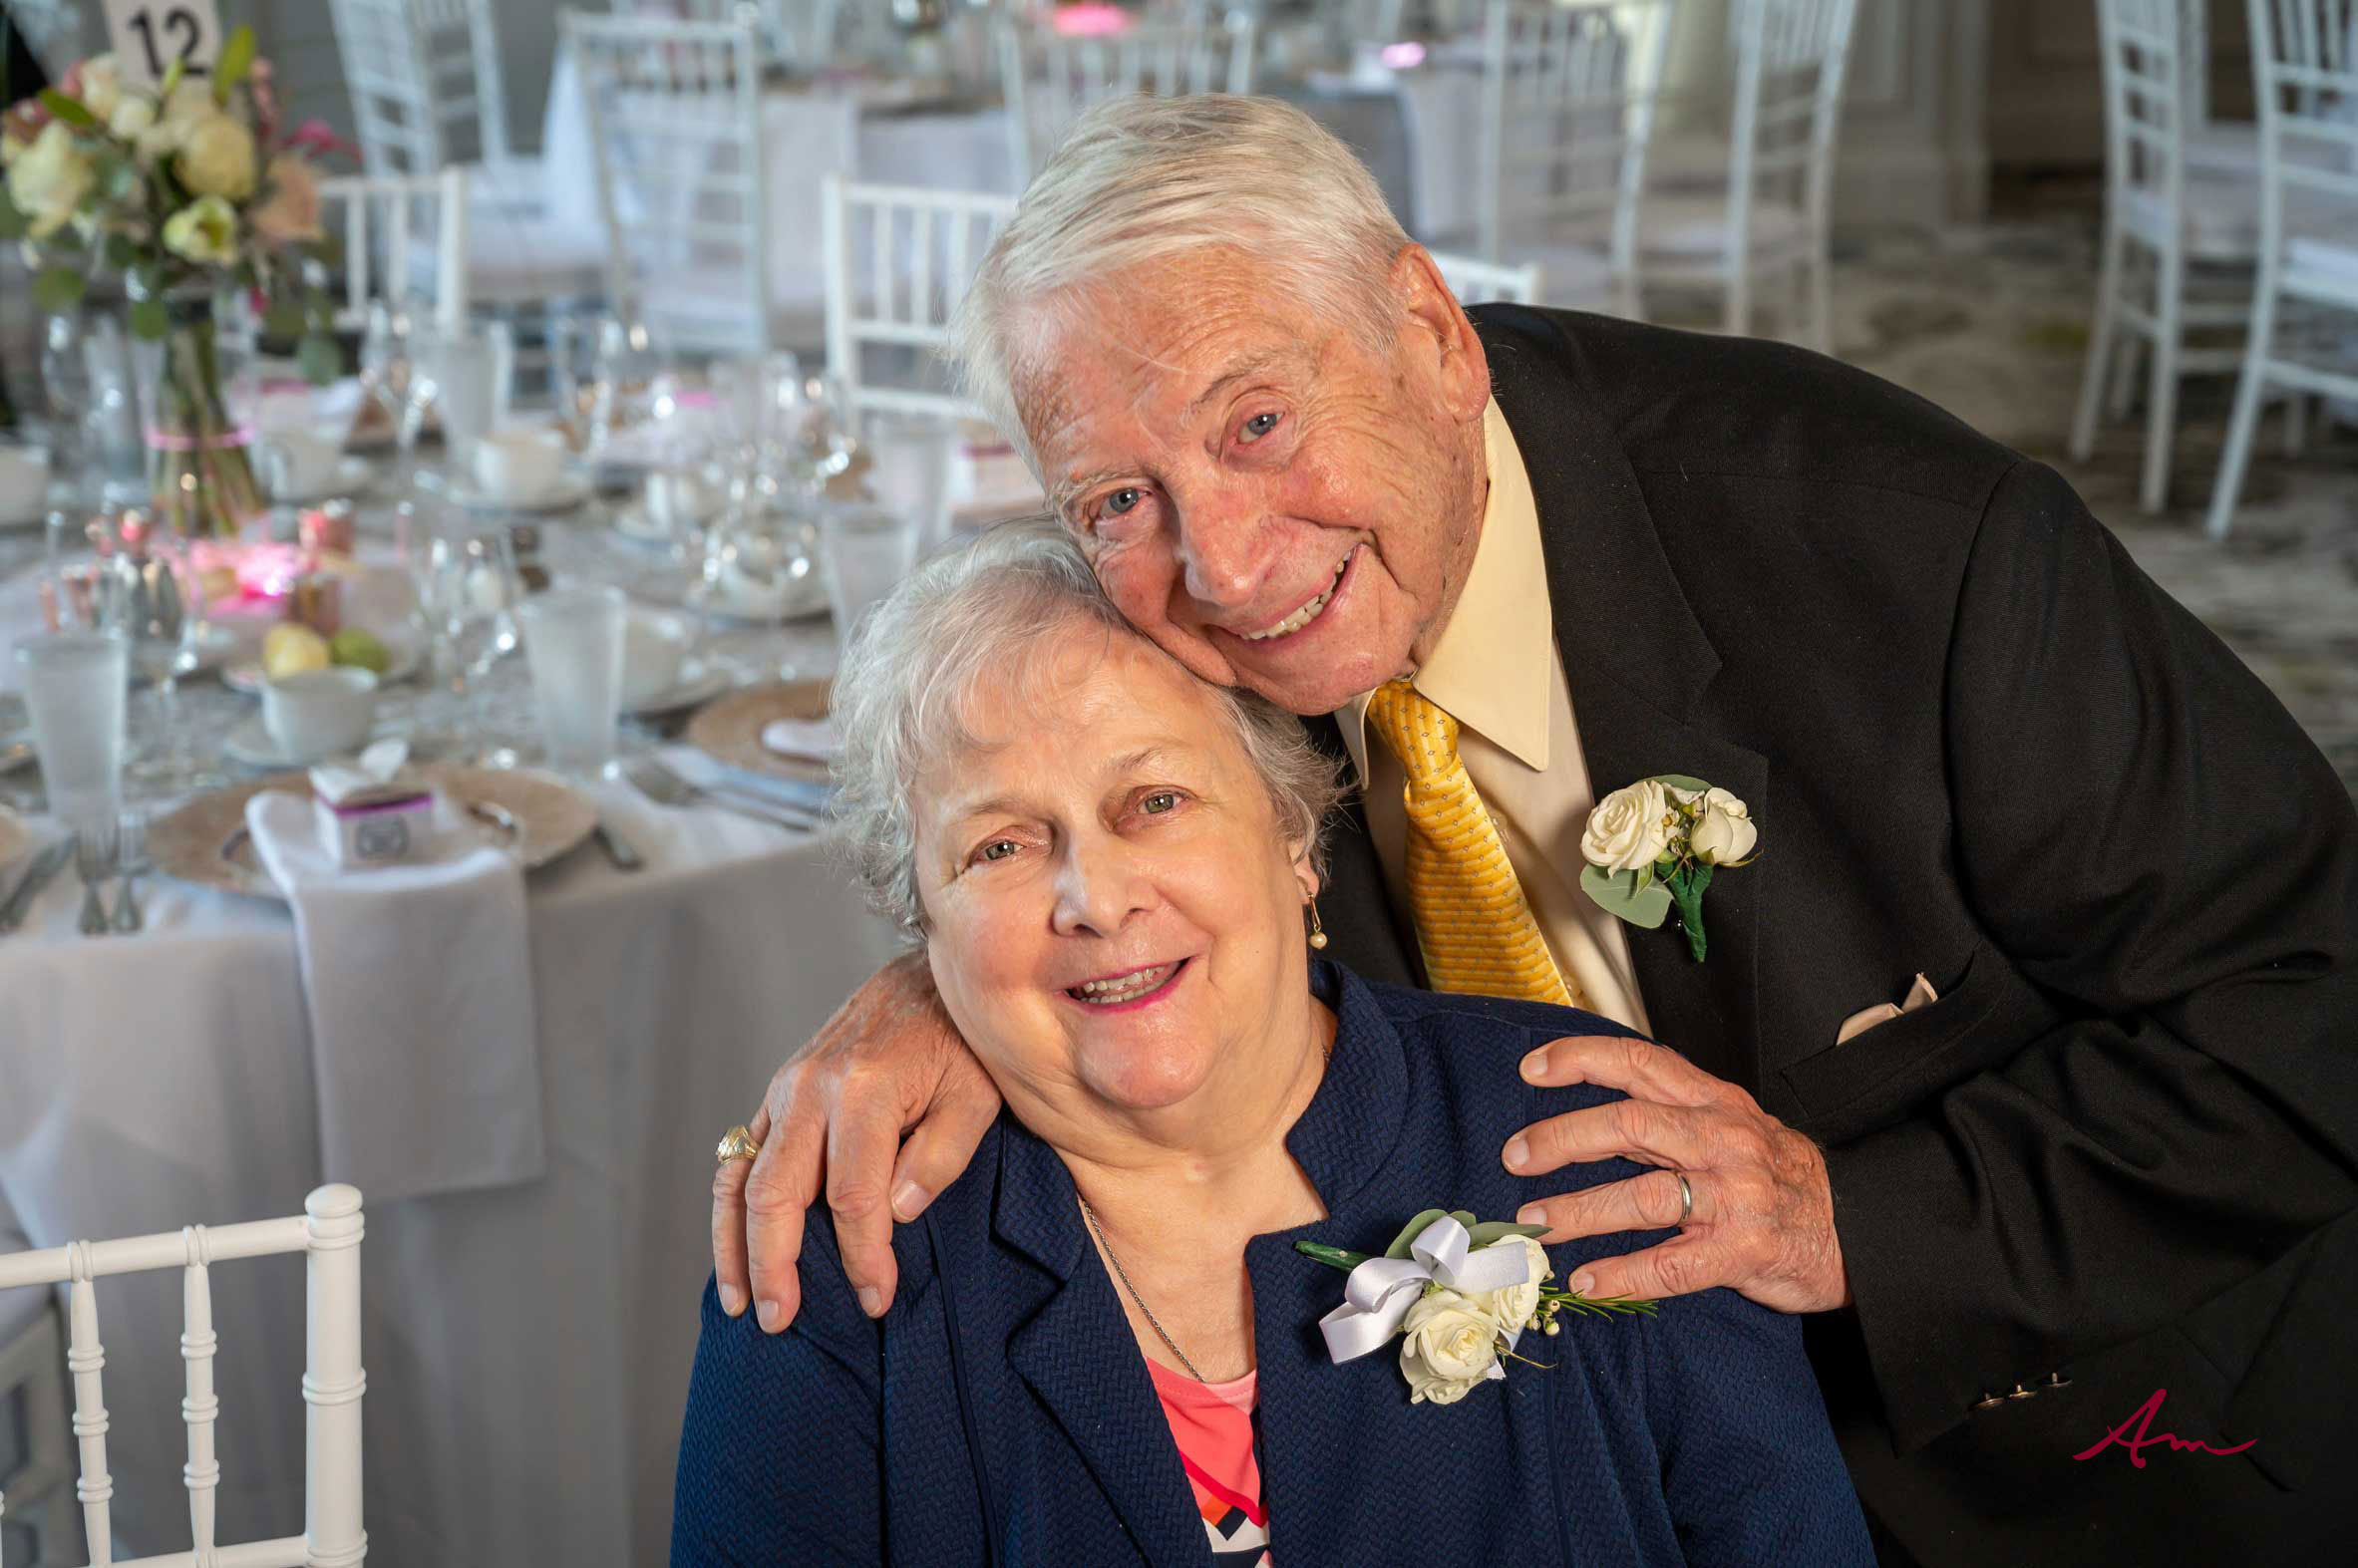 Married 62 years! Such a sweet couple.